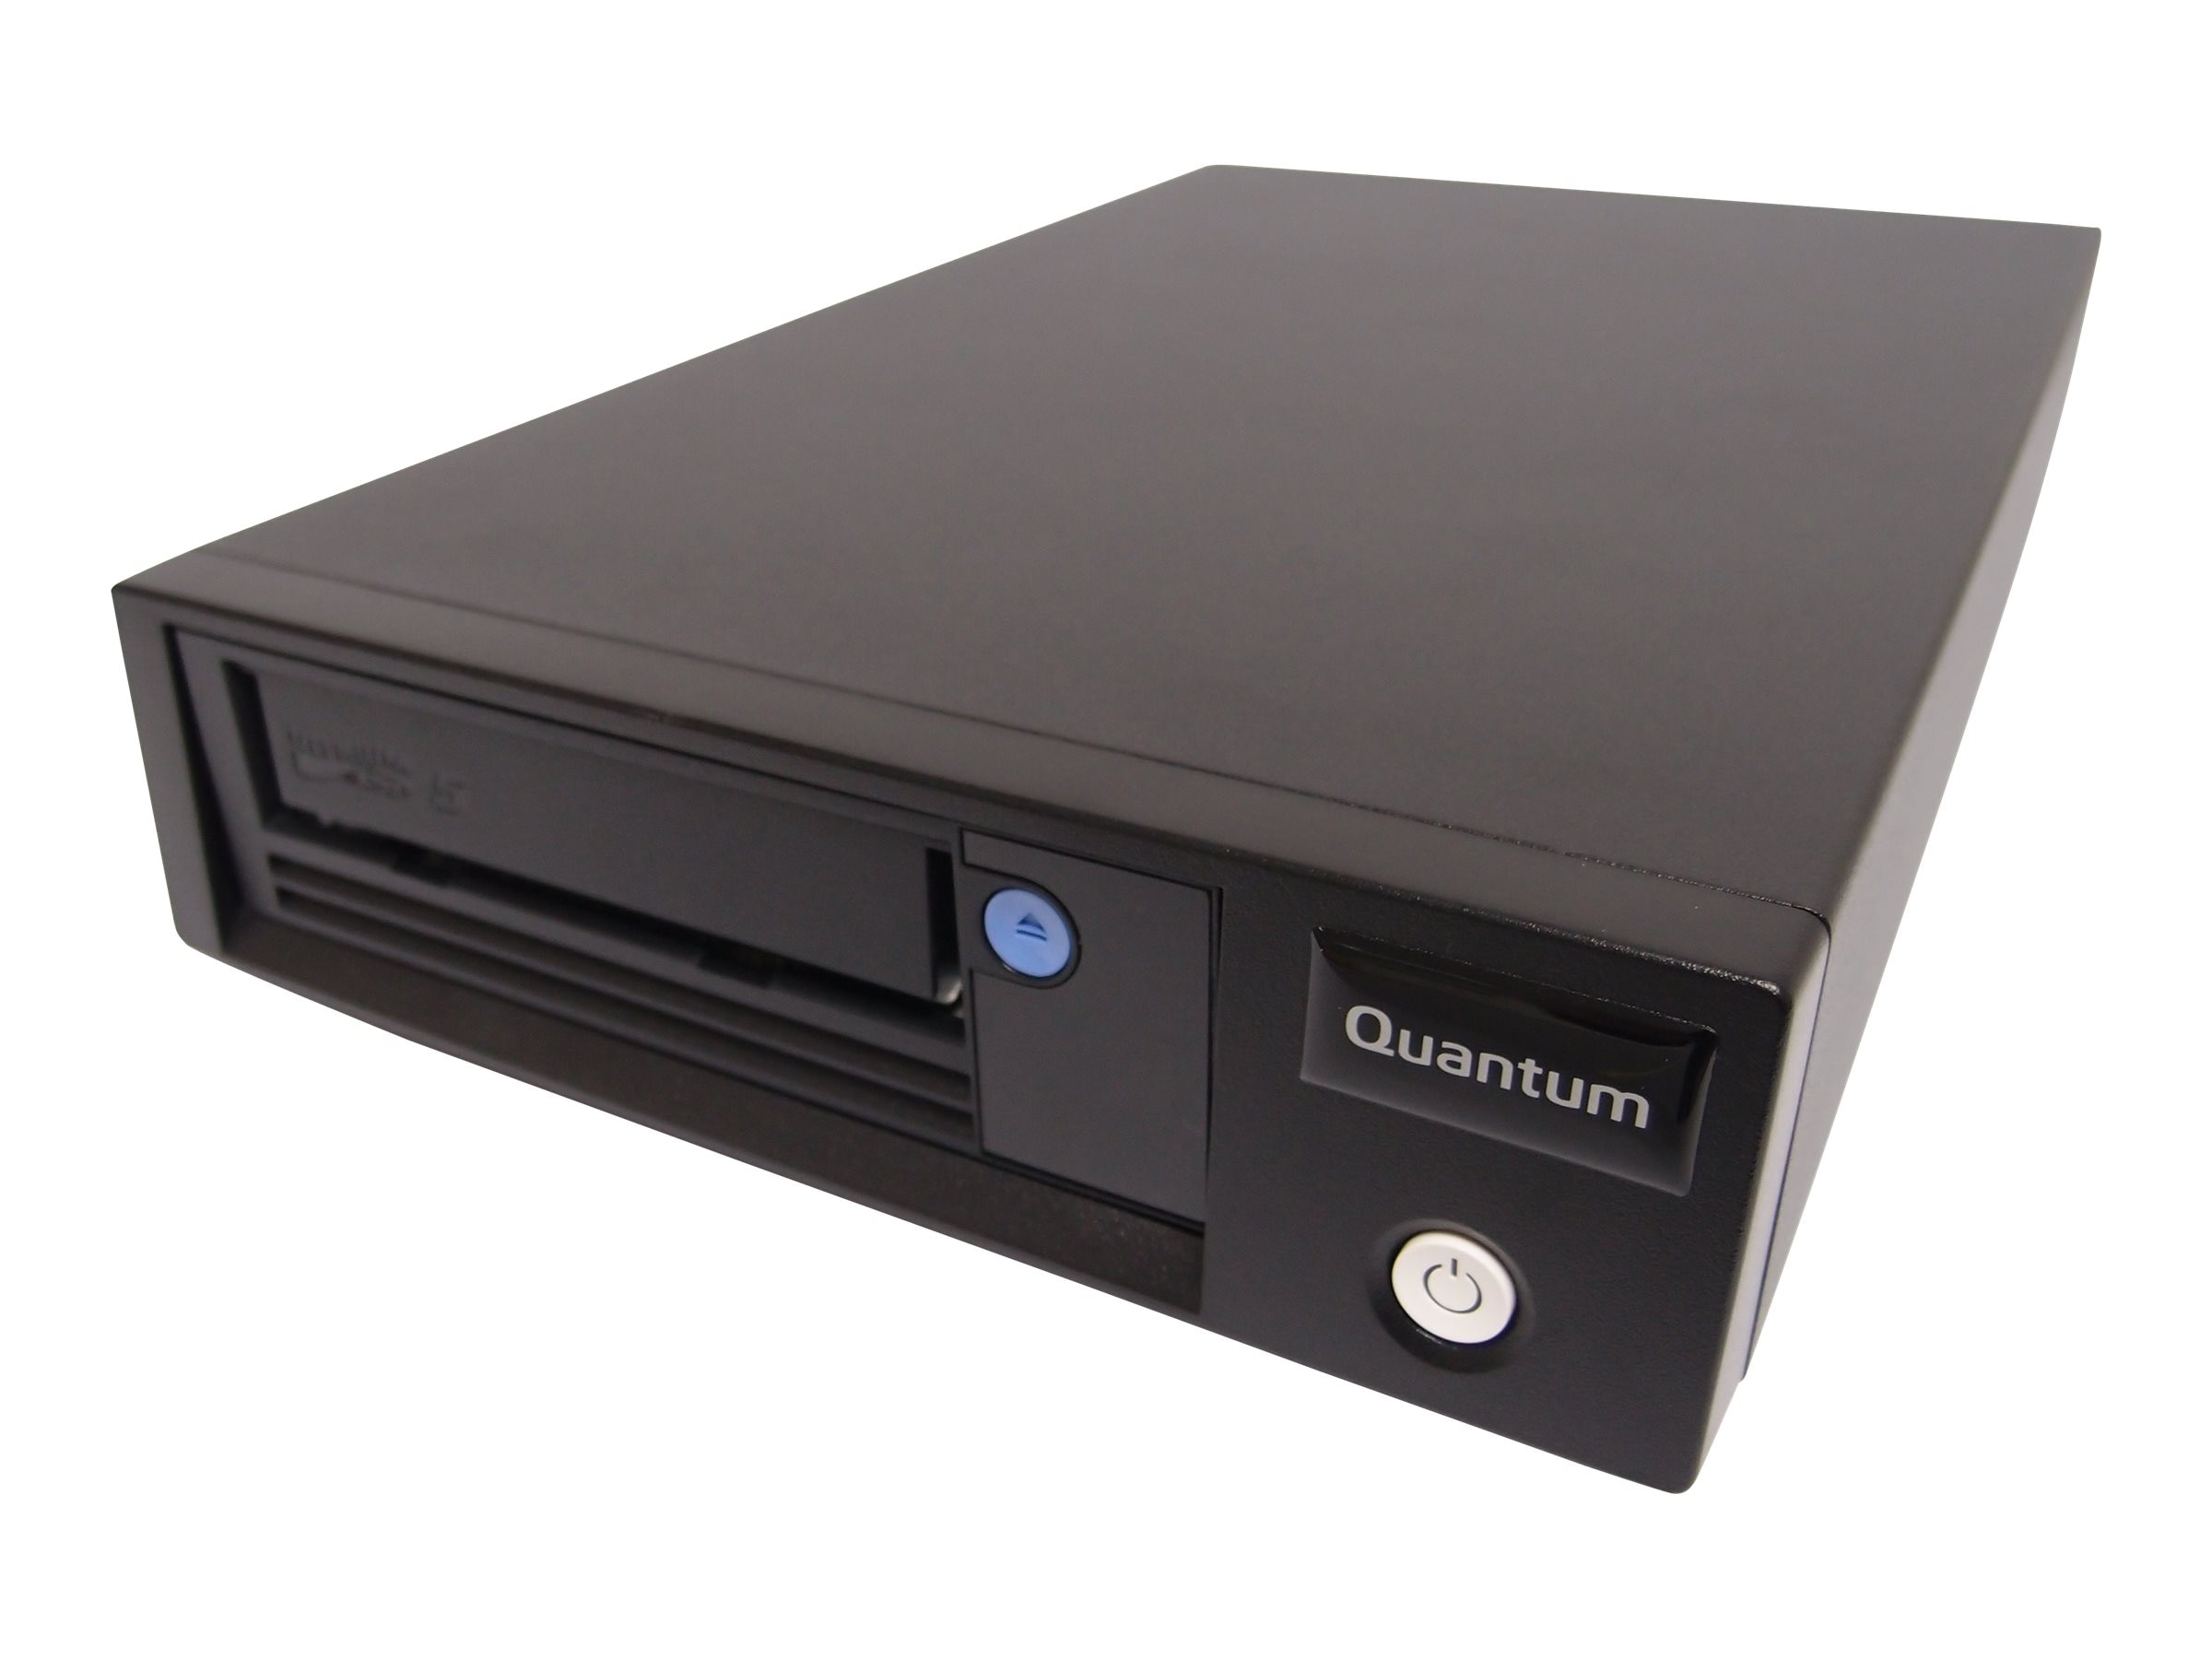 Quantum LTO-5 HH SAS 6Gb s Tabletop Model C Tape Drive - Black w  SAS HBA, TC-L52BN-EZ-C